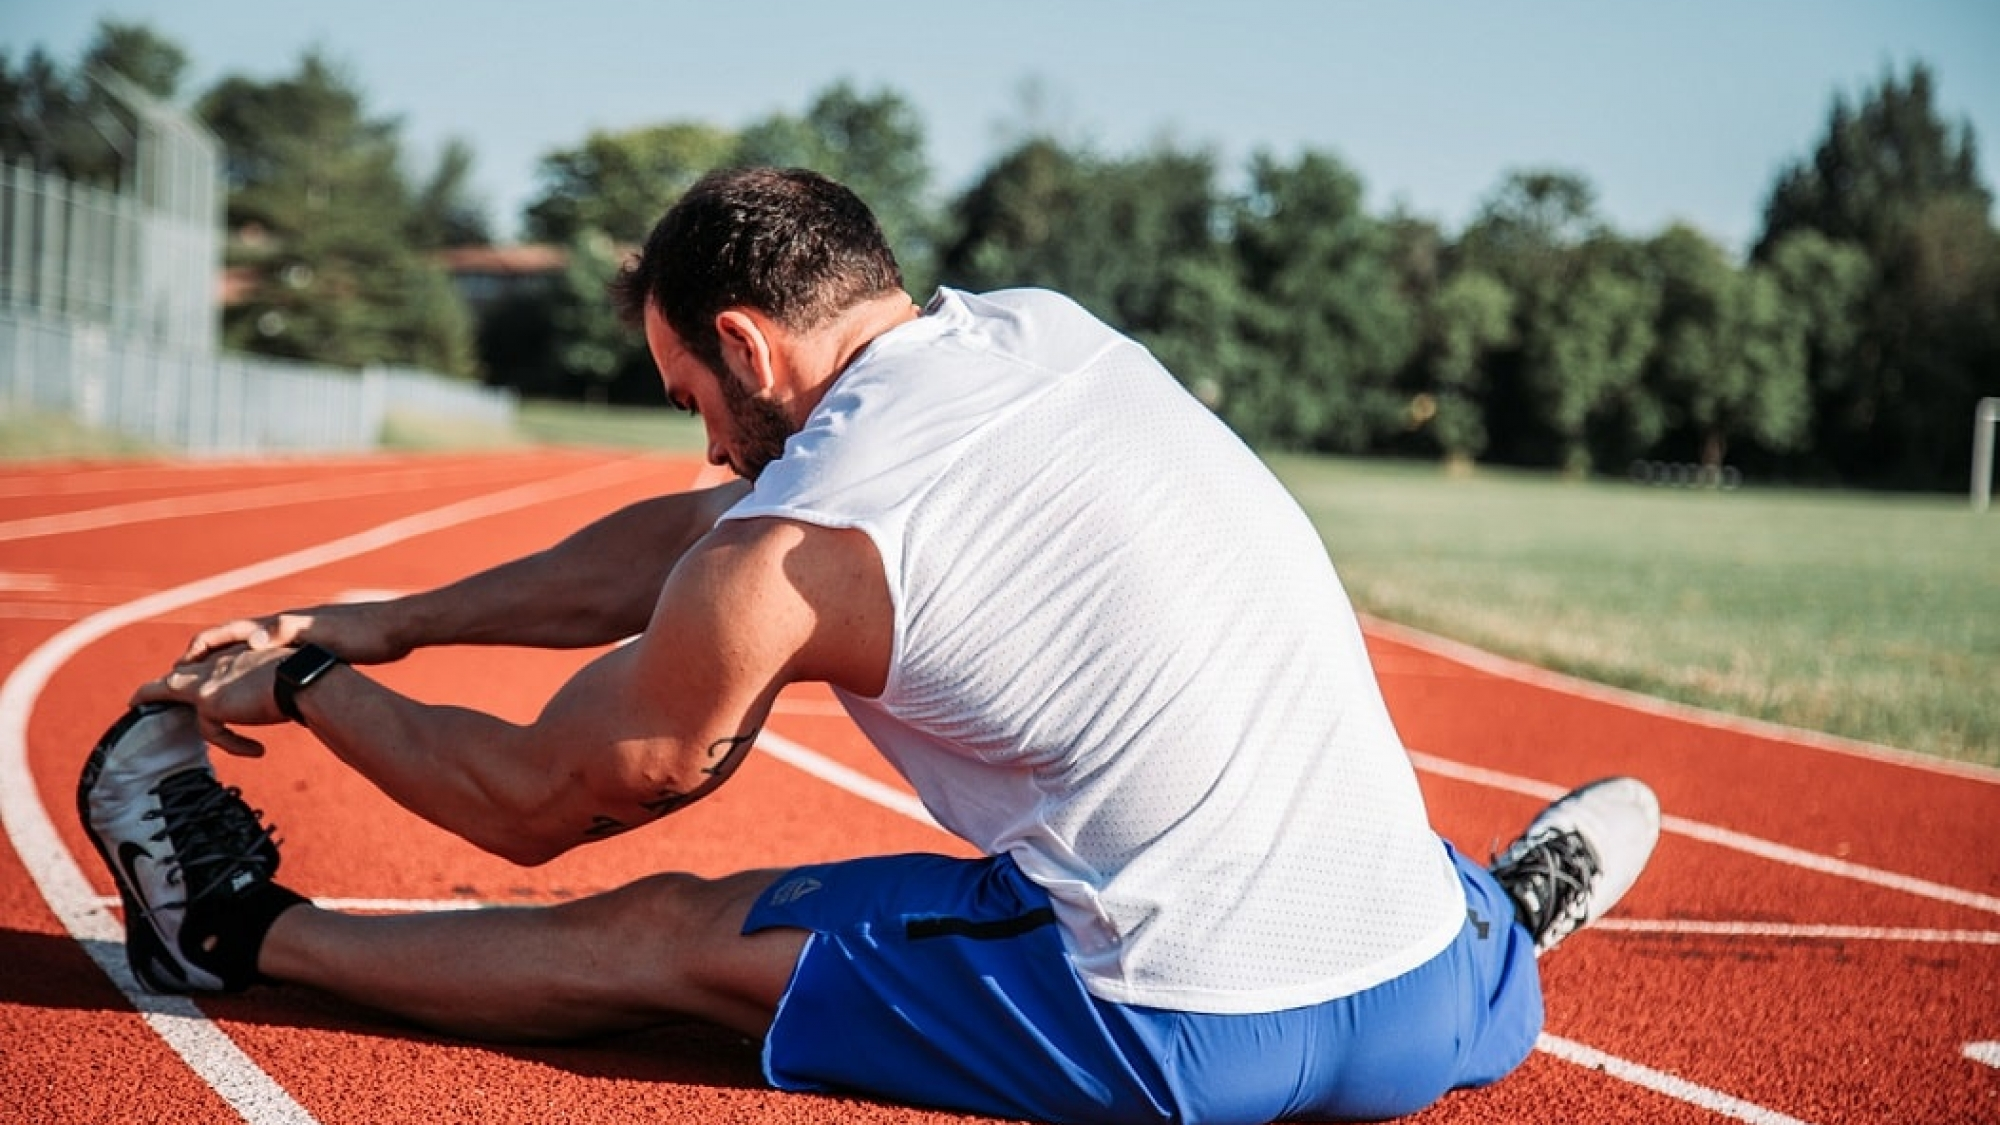 stretching-for-injury-prevention-in-sports